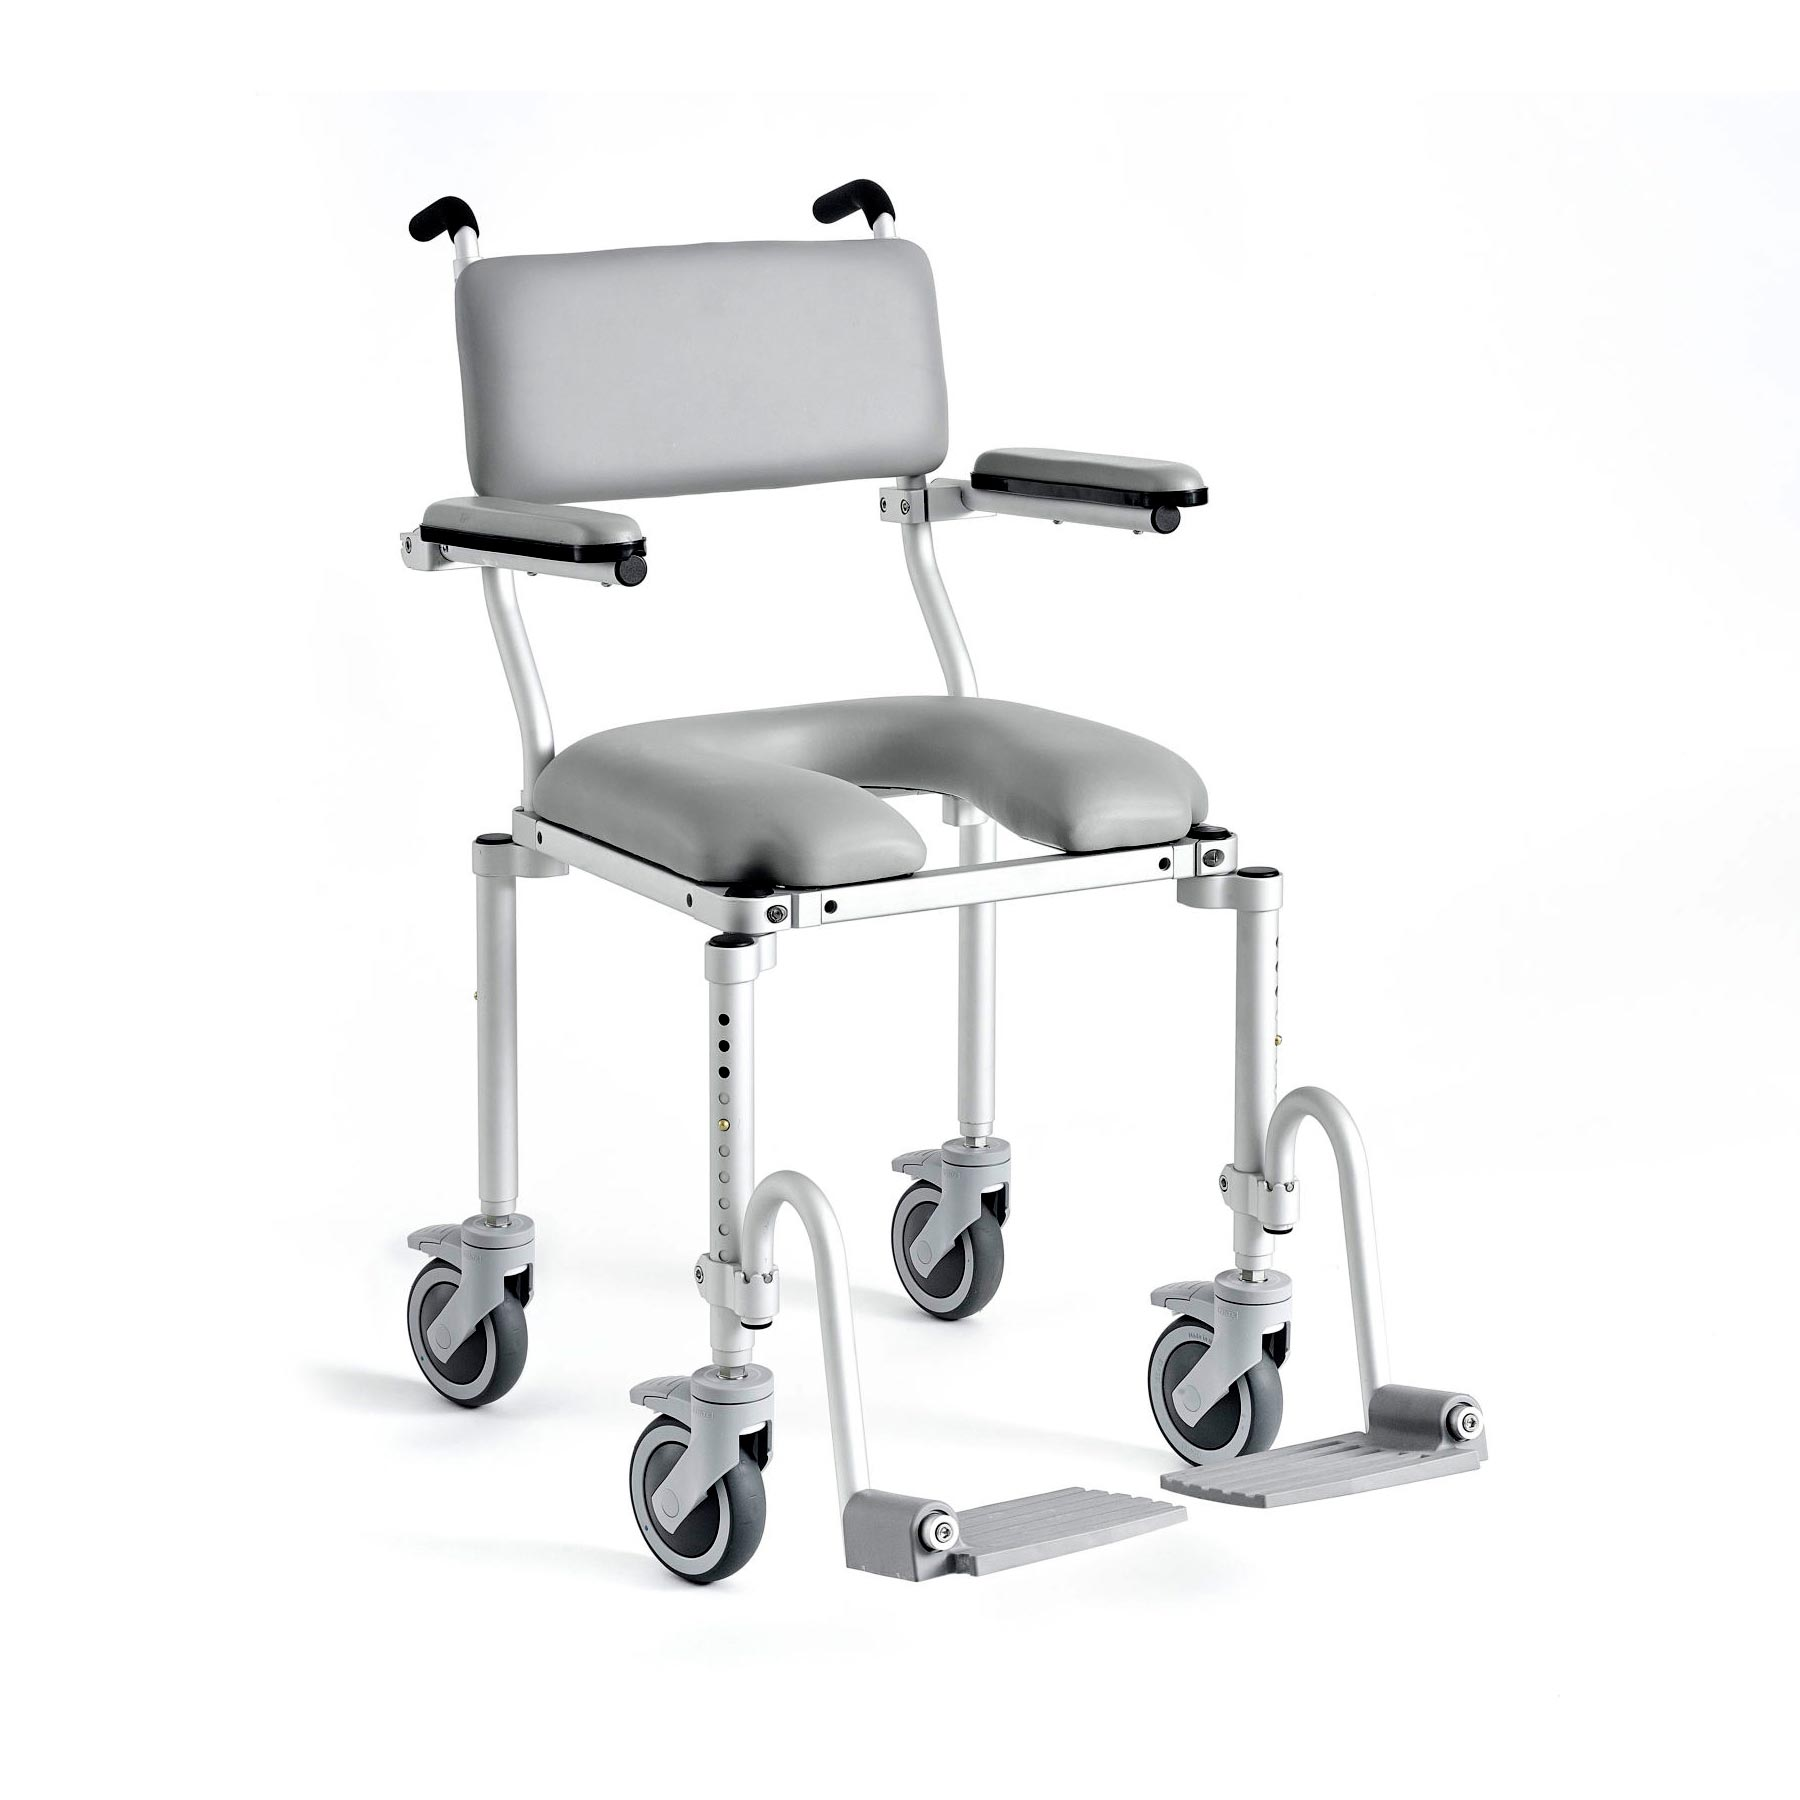 Nuprodx 4000 Roll-In-Shower Commode Chair   Medicaleshop